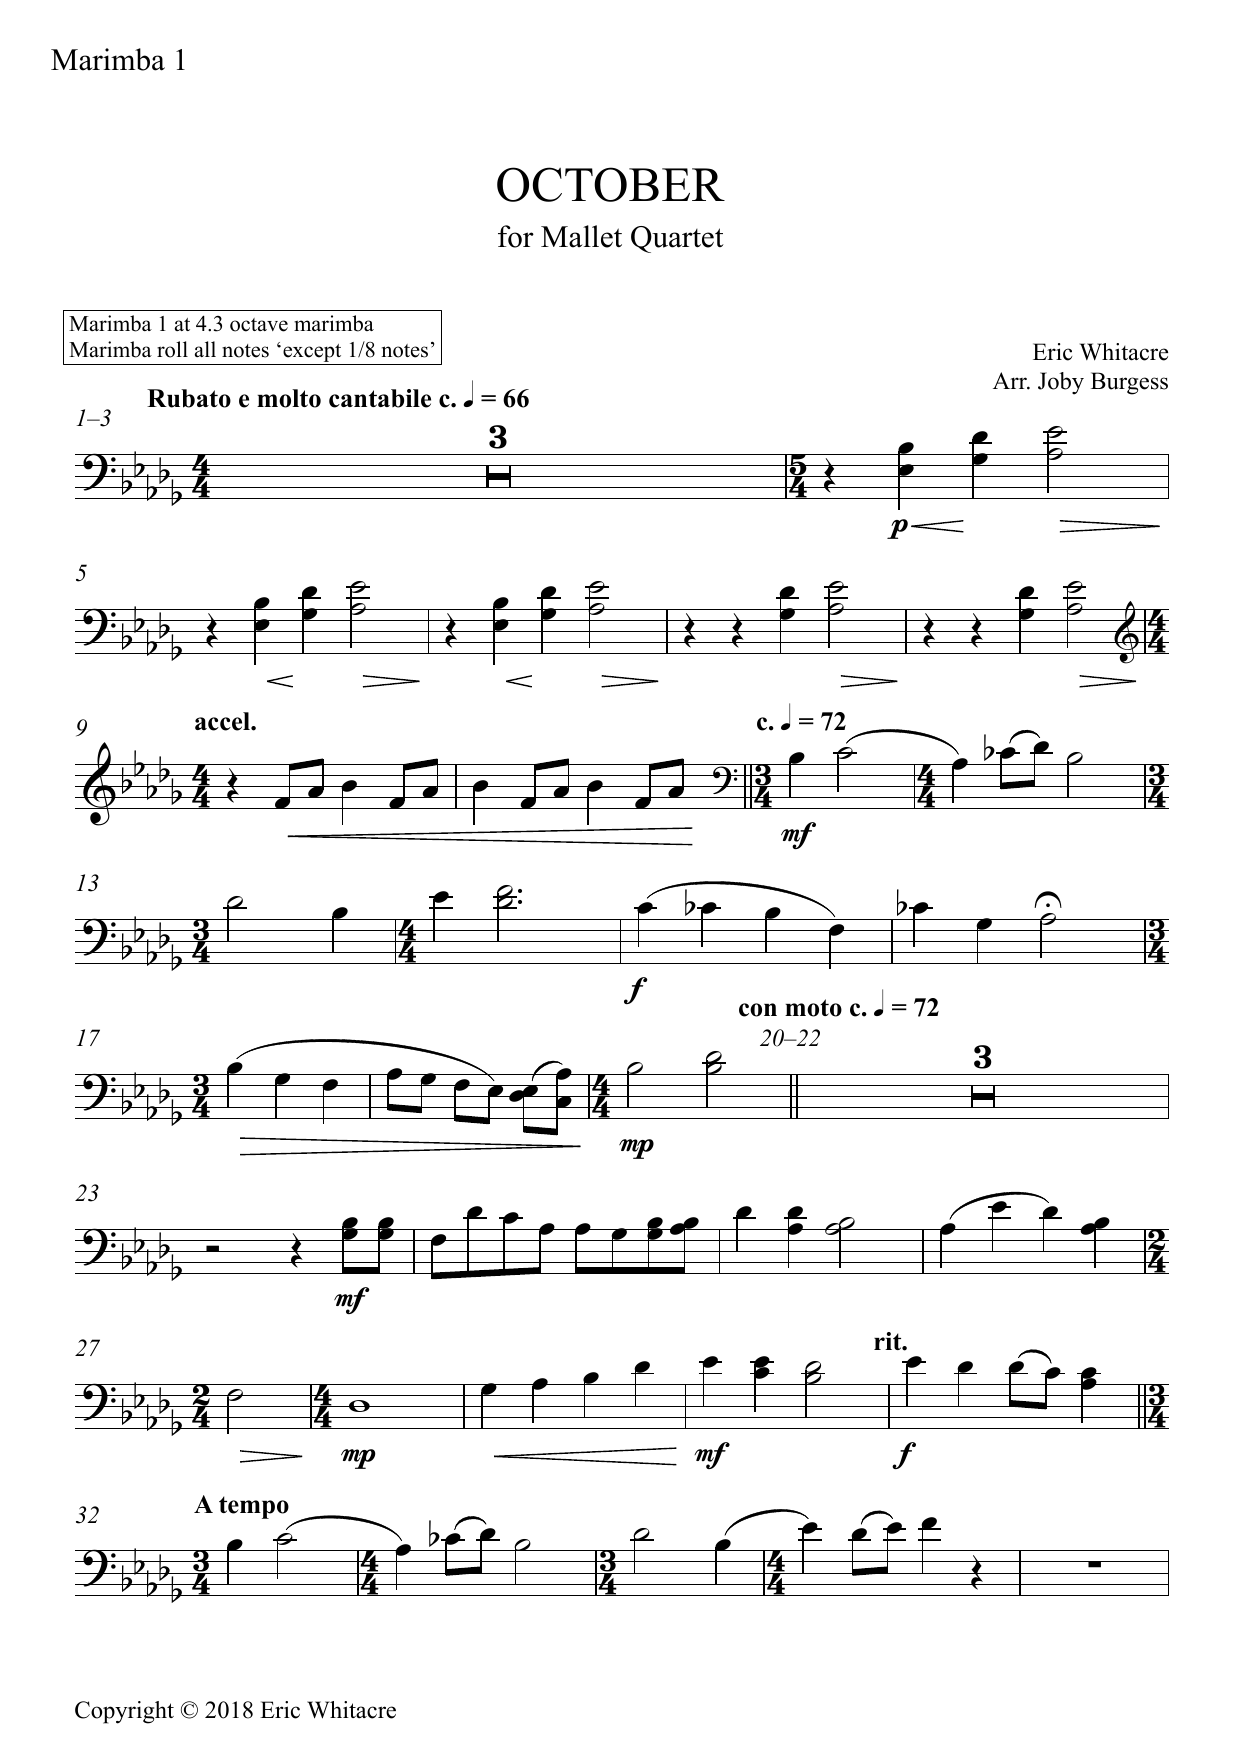 Eric Whitacre October (Alleluia) for Mallet Quartet (arr. Joby Burgess) - Marimba 1 sheet music preview music notes and score for Percussion Ensemble including 3 page(s)